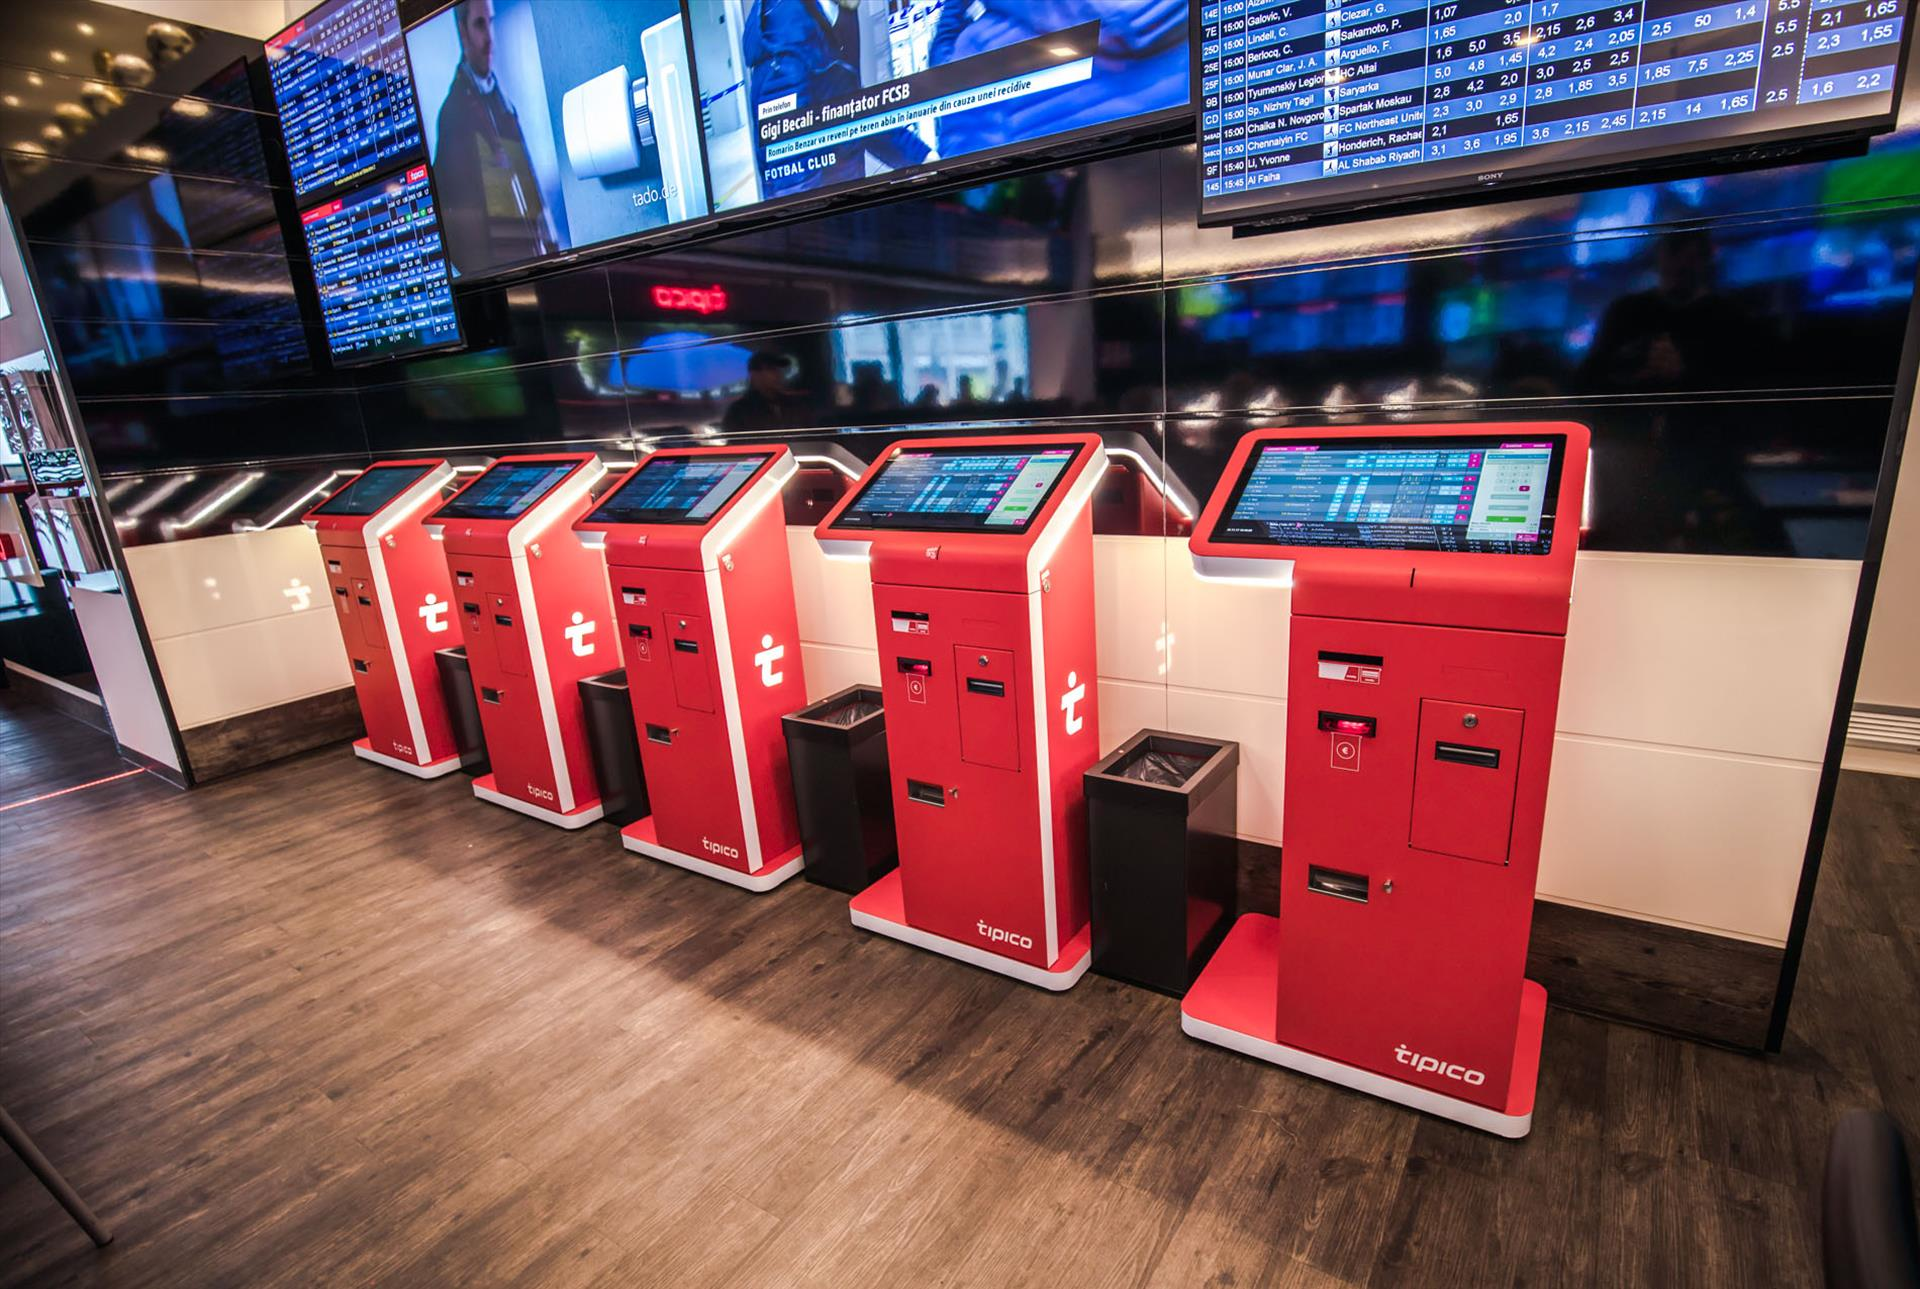 Tipico_Betting Terminals_In Shop